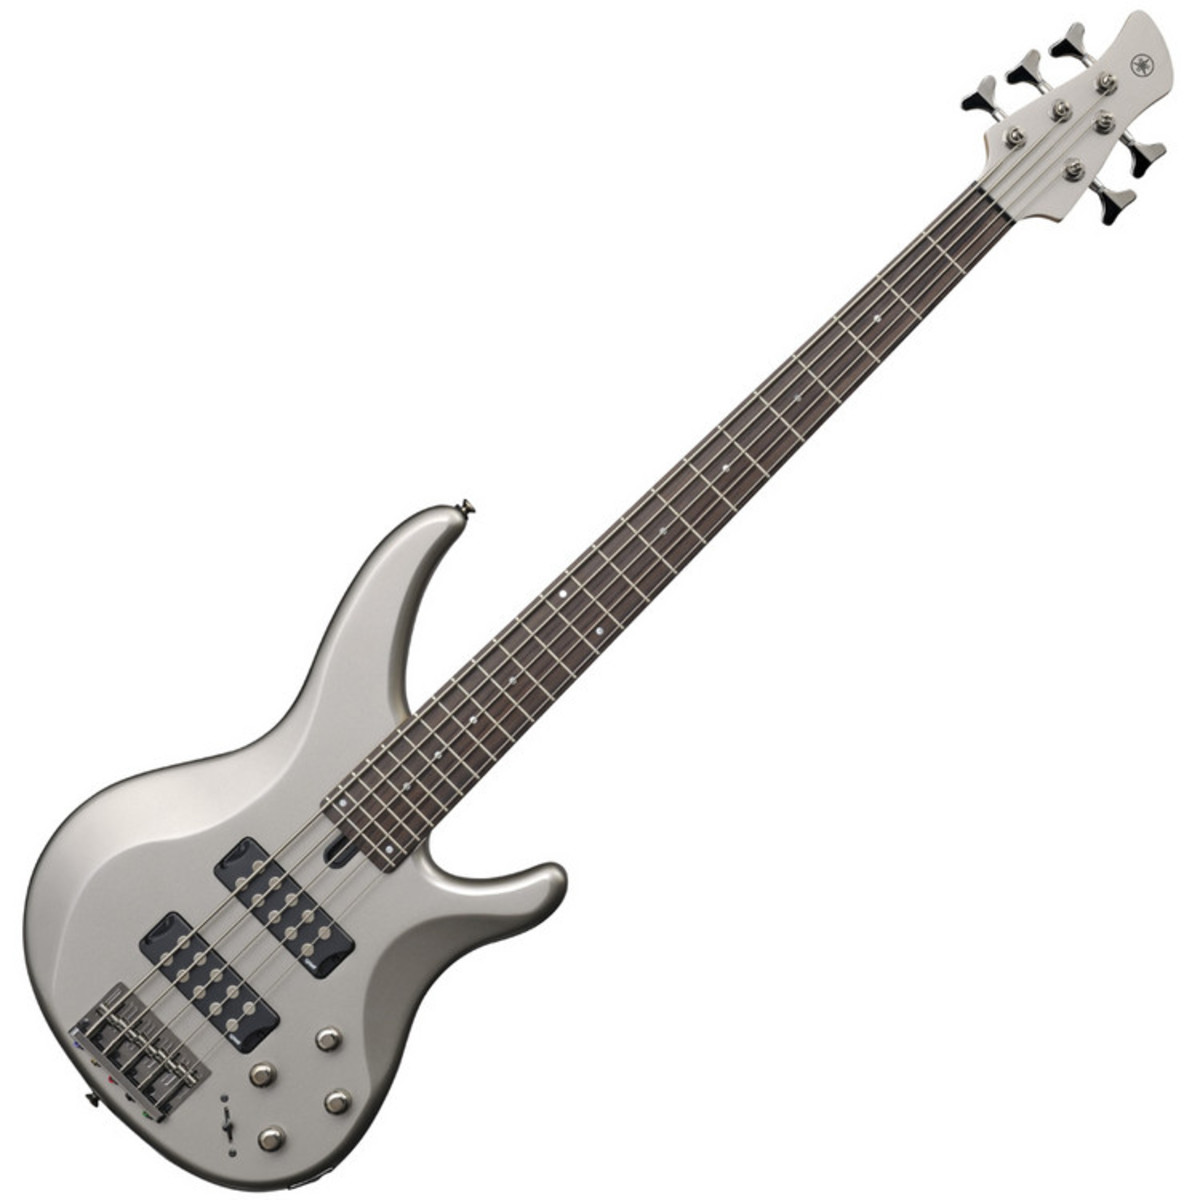 yamaha trbx305 5 string bass guitar pewter at gear4music. Black Bedroom Furniture Sets. Home Design Ideas